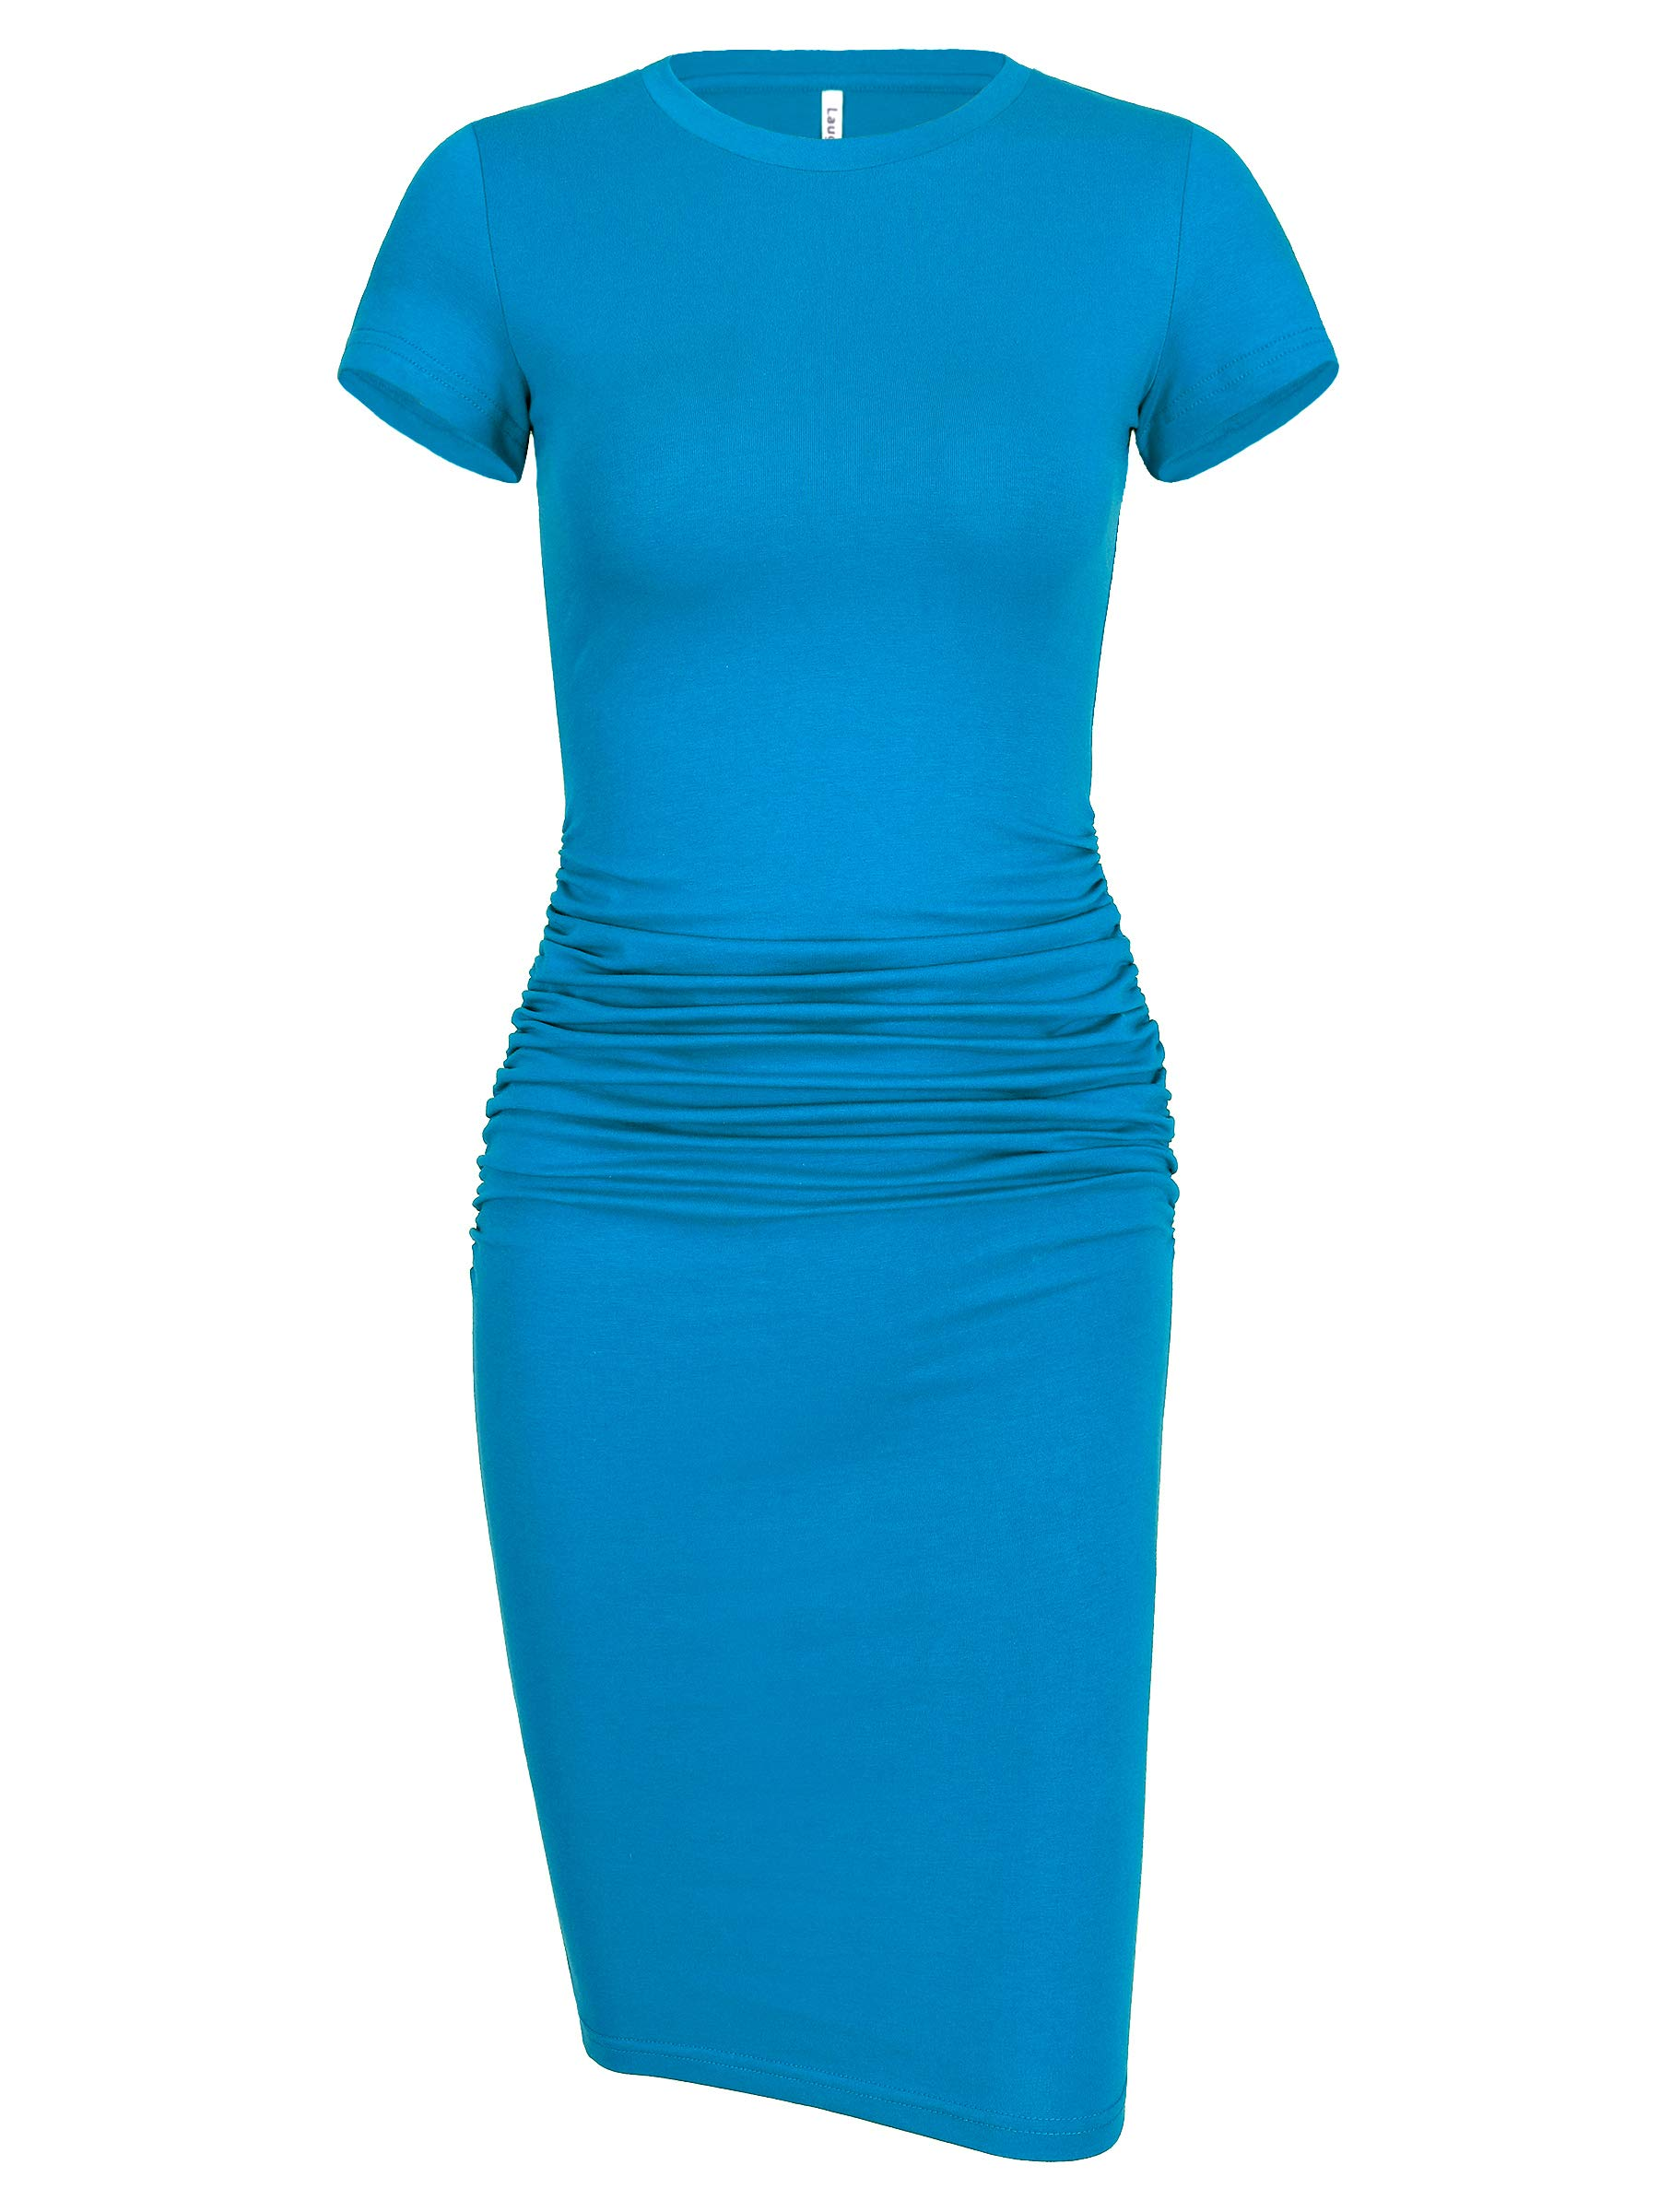 Laughido Womens Short Sleeve Ruched Sundress Knee Length Casual Bodycon T Shirt Dress